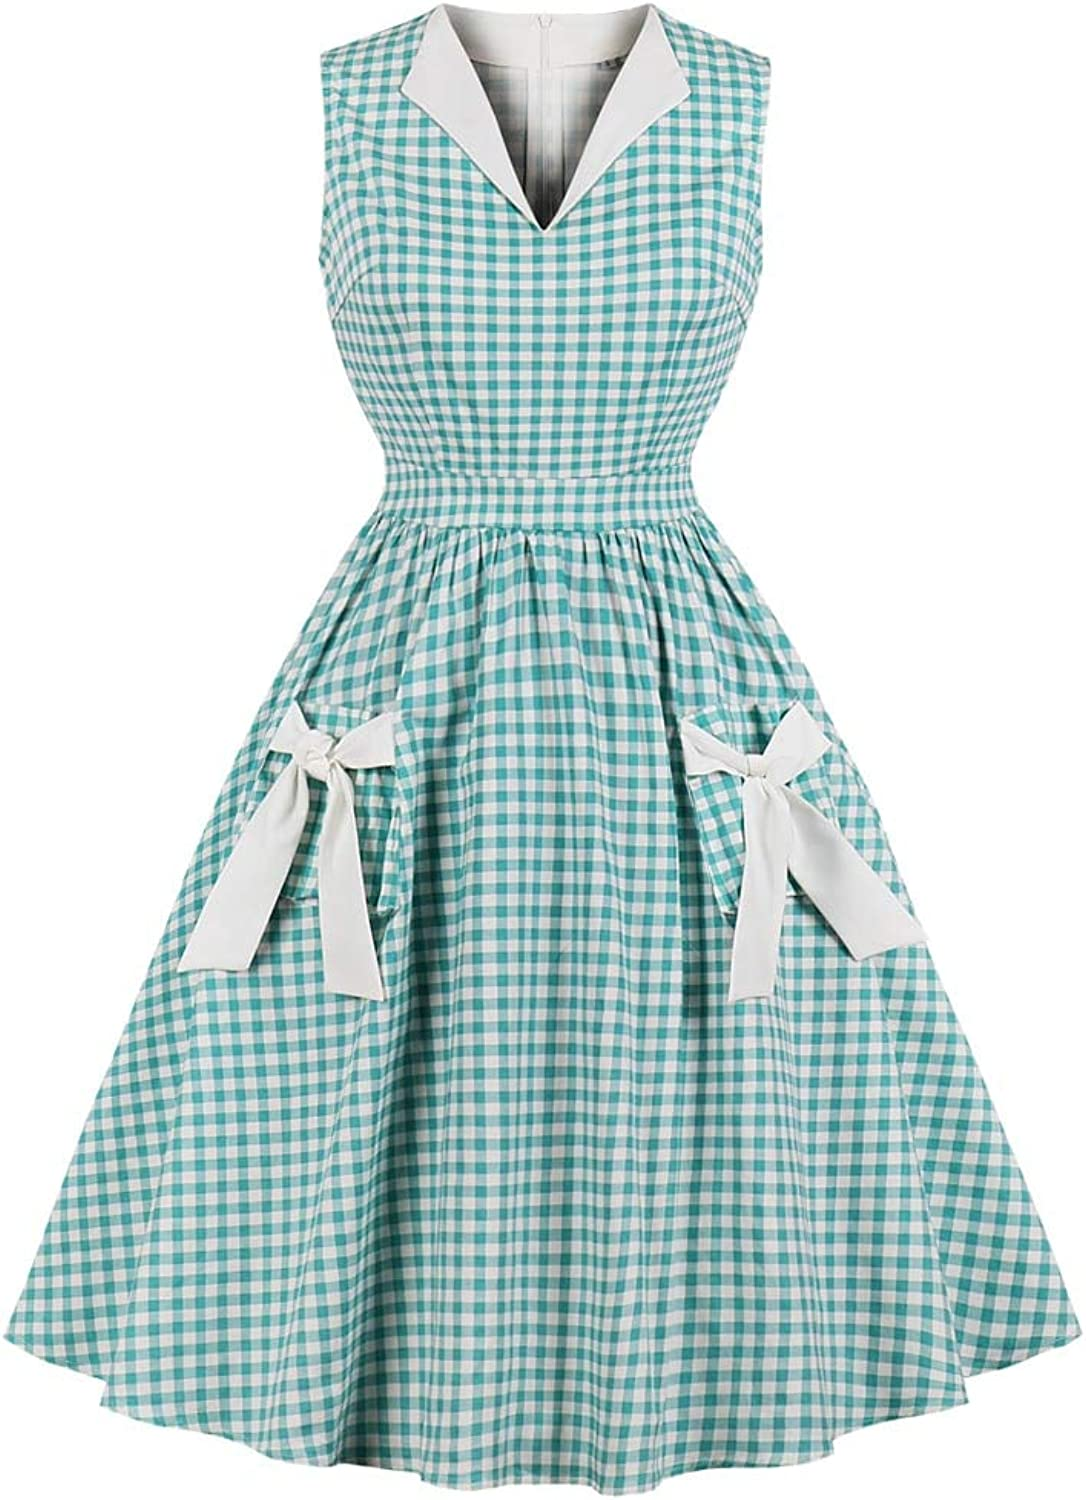 FUZHUANGHM Elegant Party Vintage Dress Plaid Check Print Bowknot Pockets Retro Dress